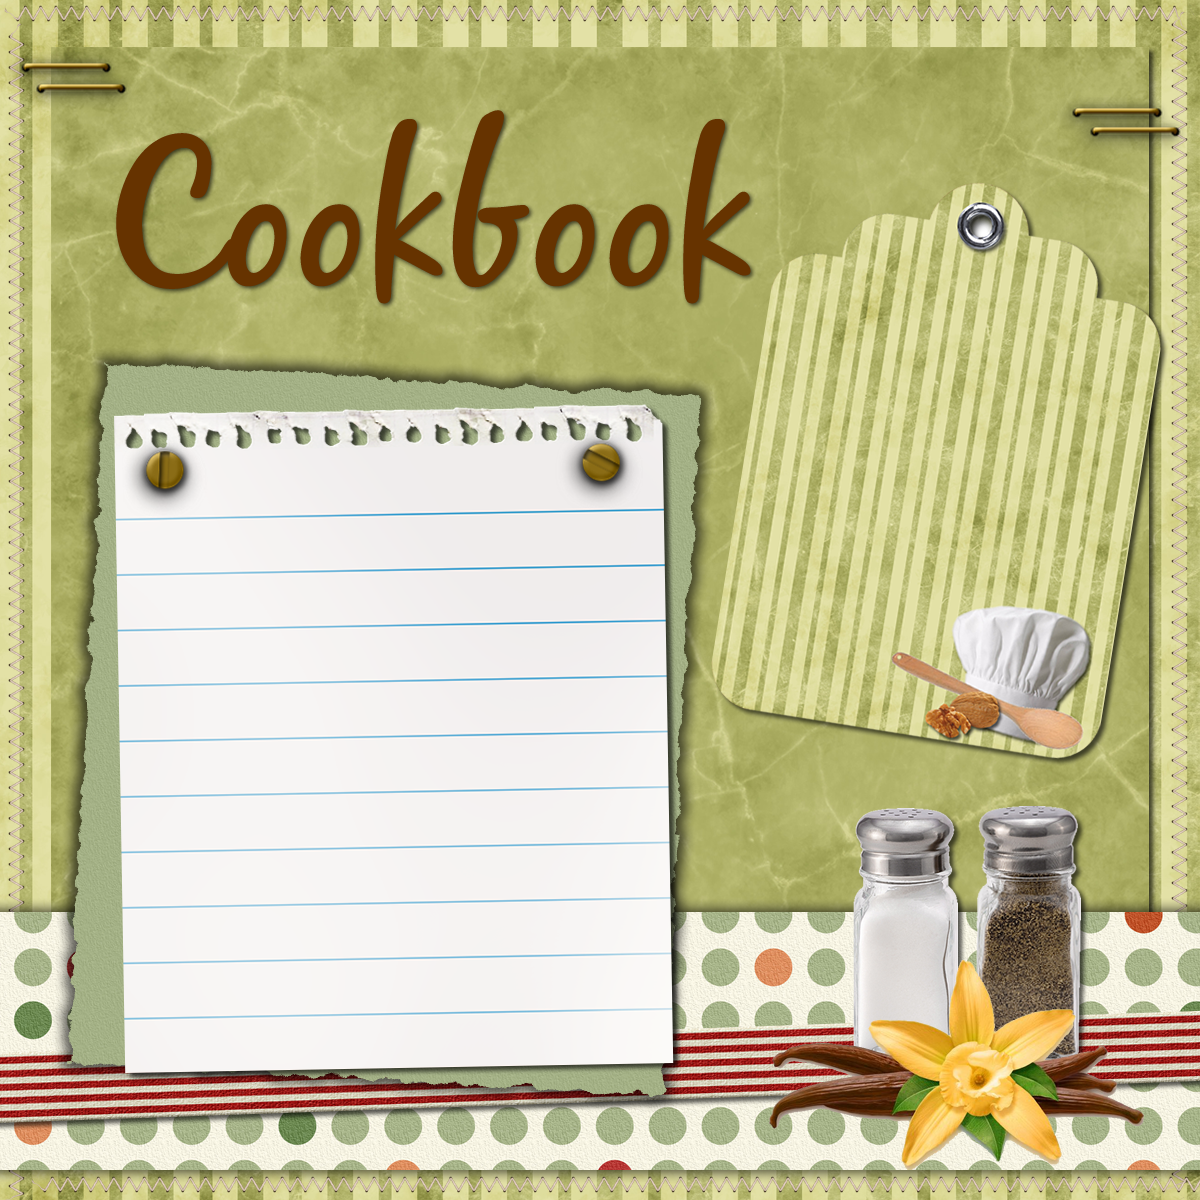 Cookbook Cover : Living life at the alverno